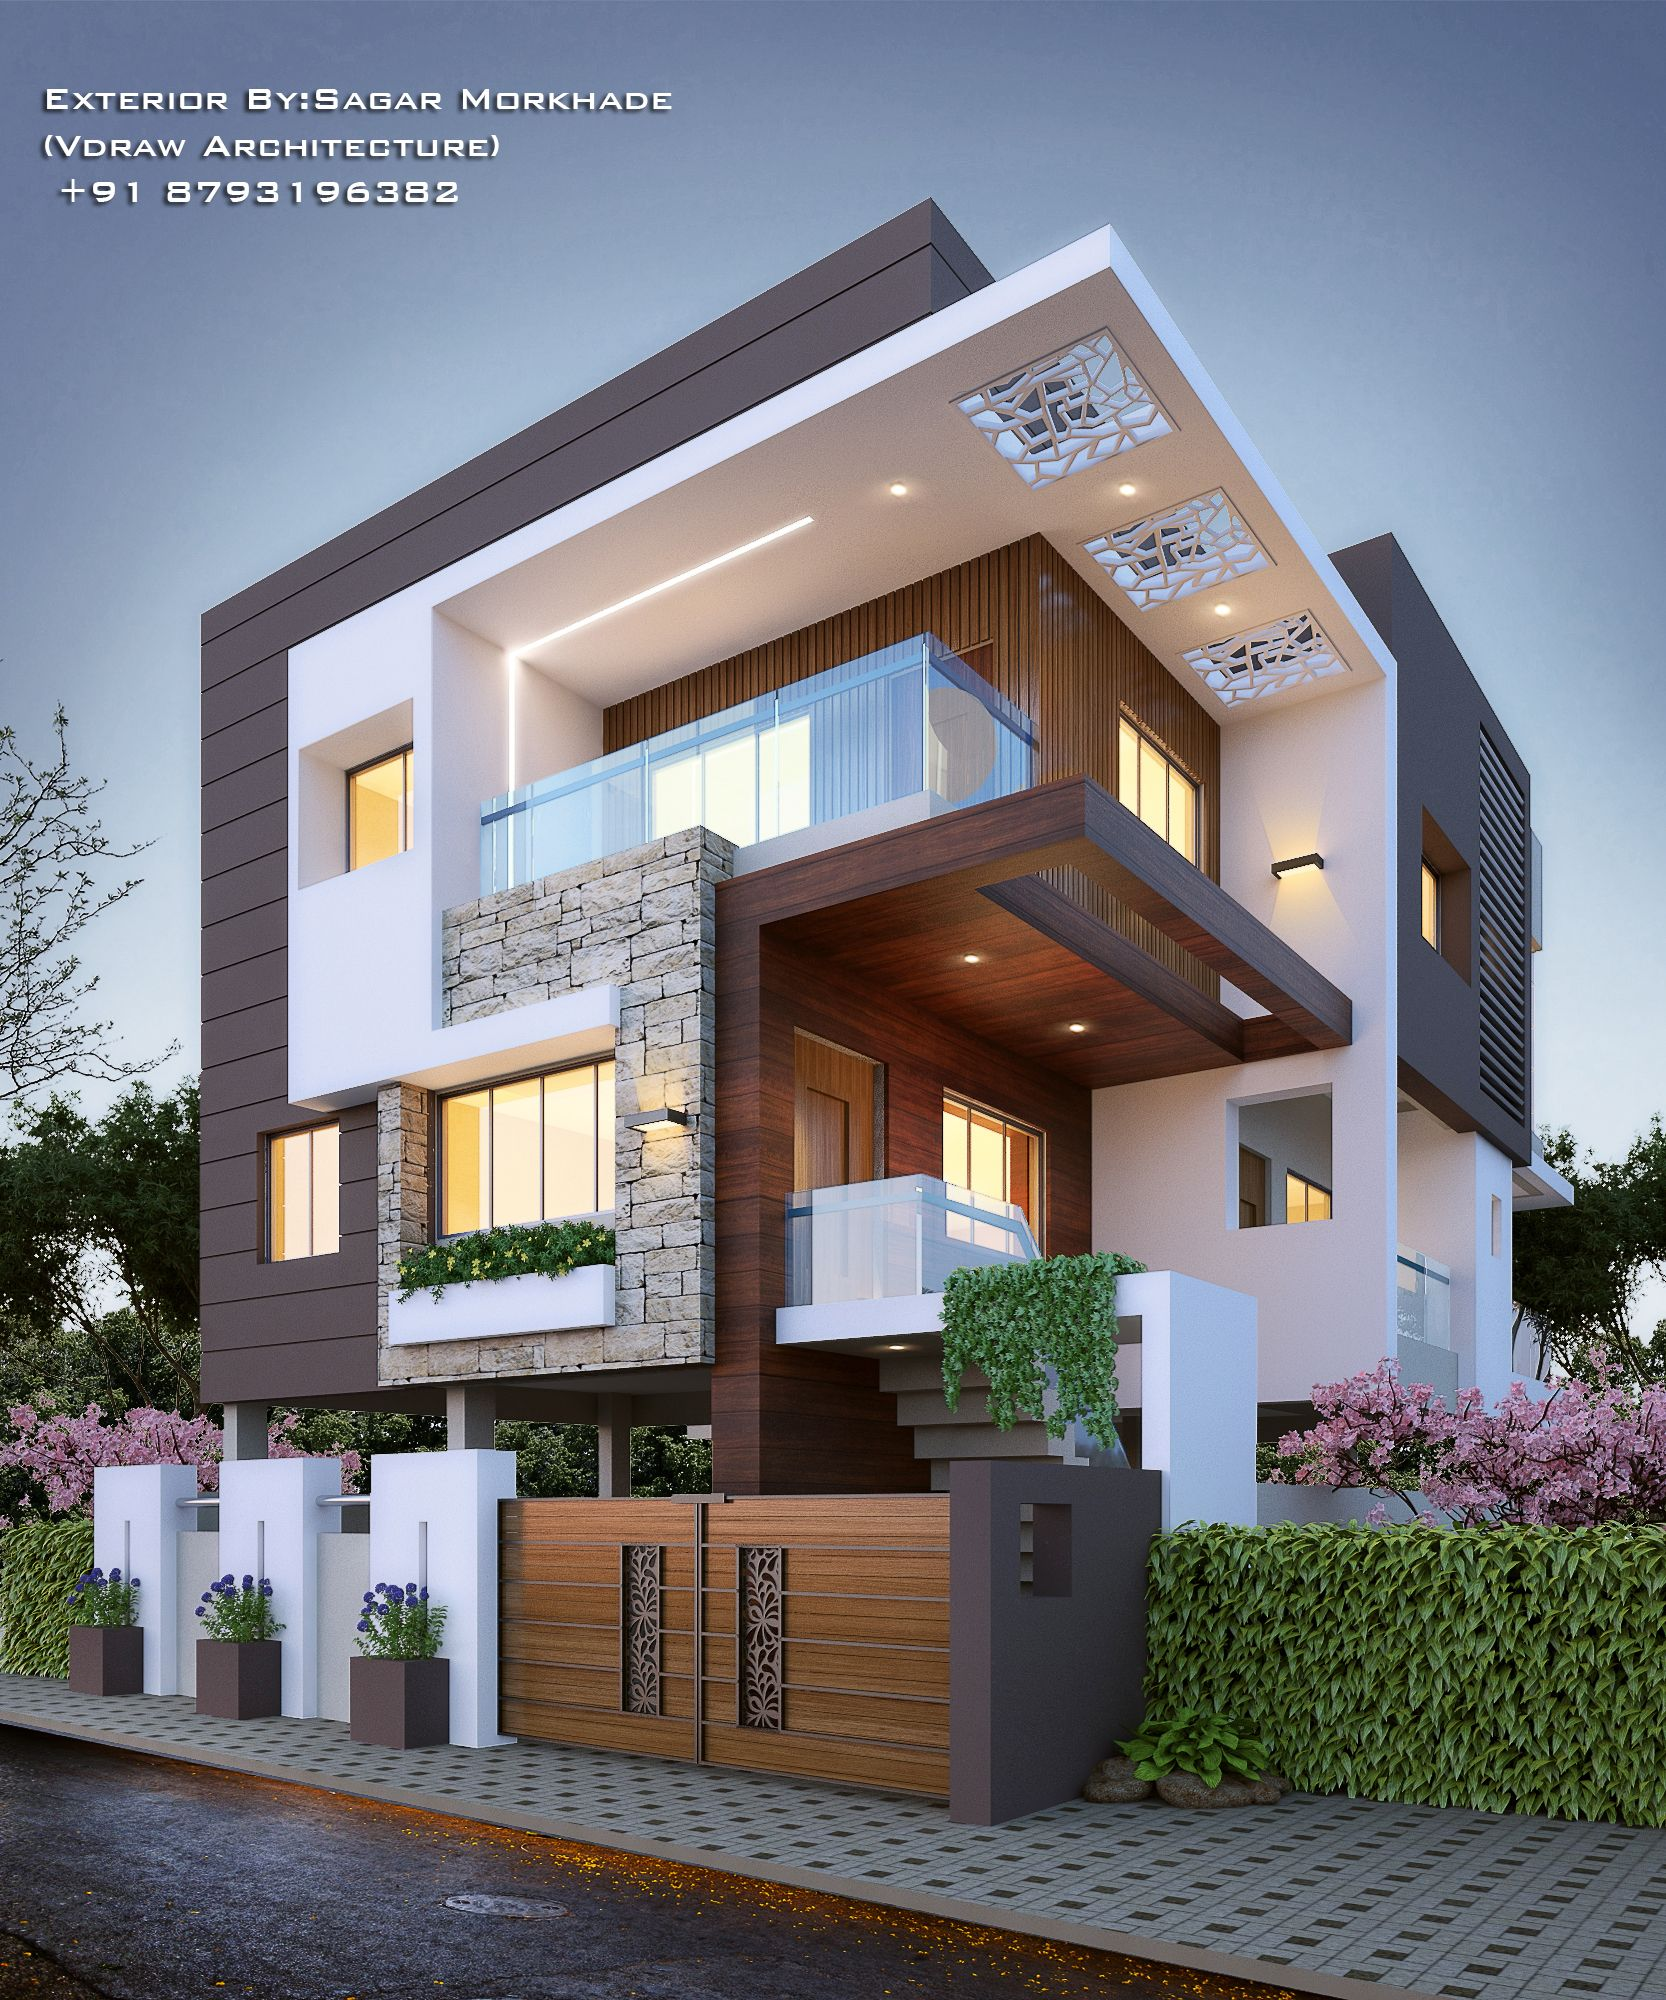 30 Contemporary Home Exterior Design Ideas: #Modern #Residential #Exterior By, Sagar Morkhade (Vdraw